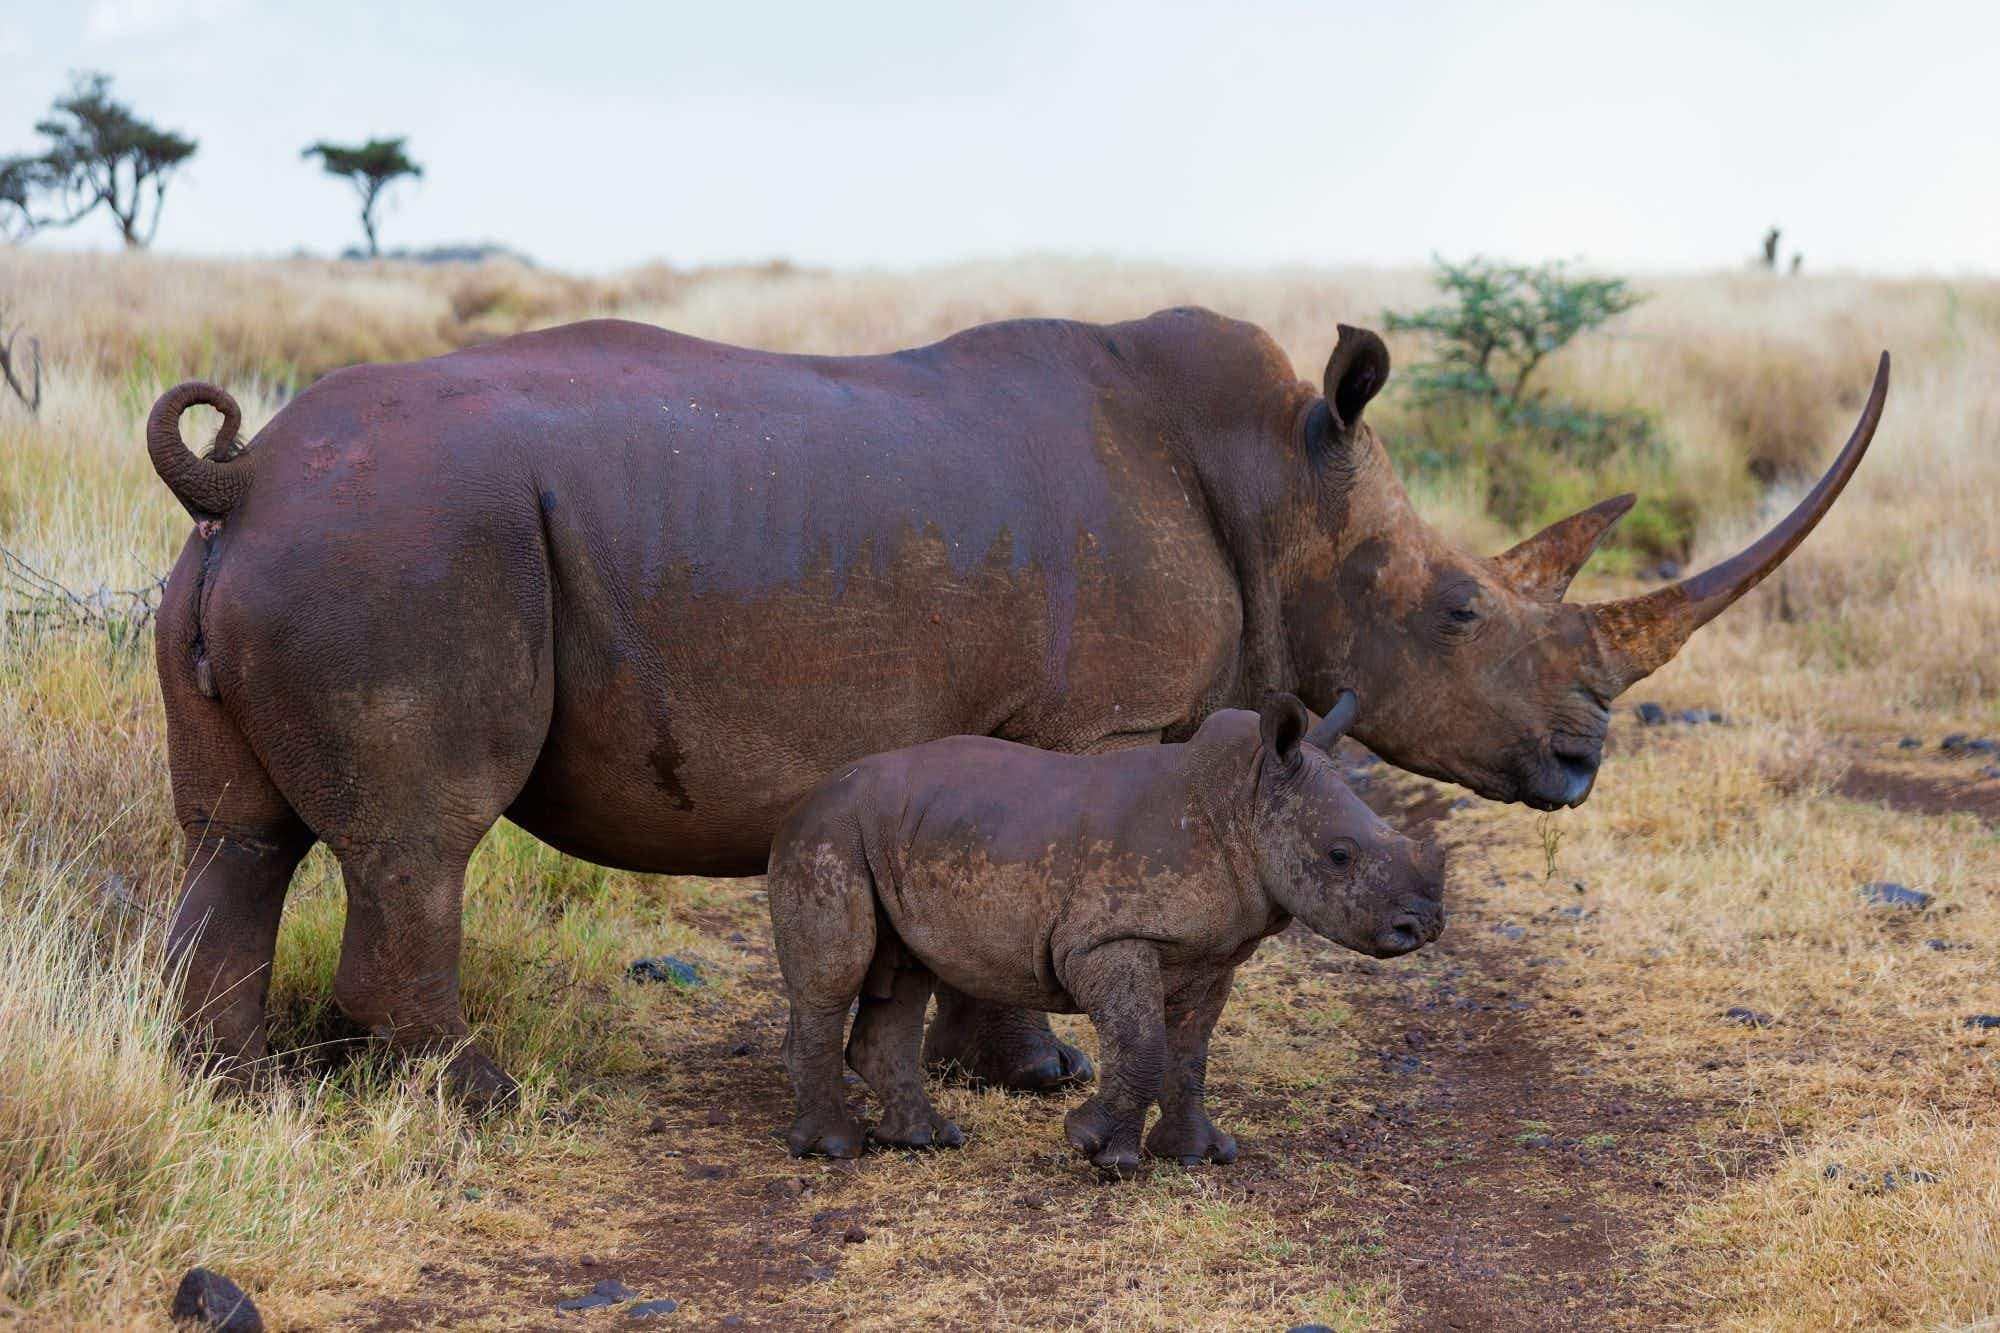 The incredible Kenyan conservation project that saw fourteen new rhinos born last year